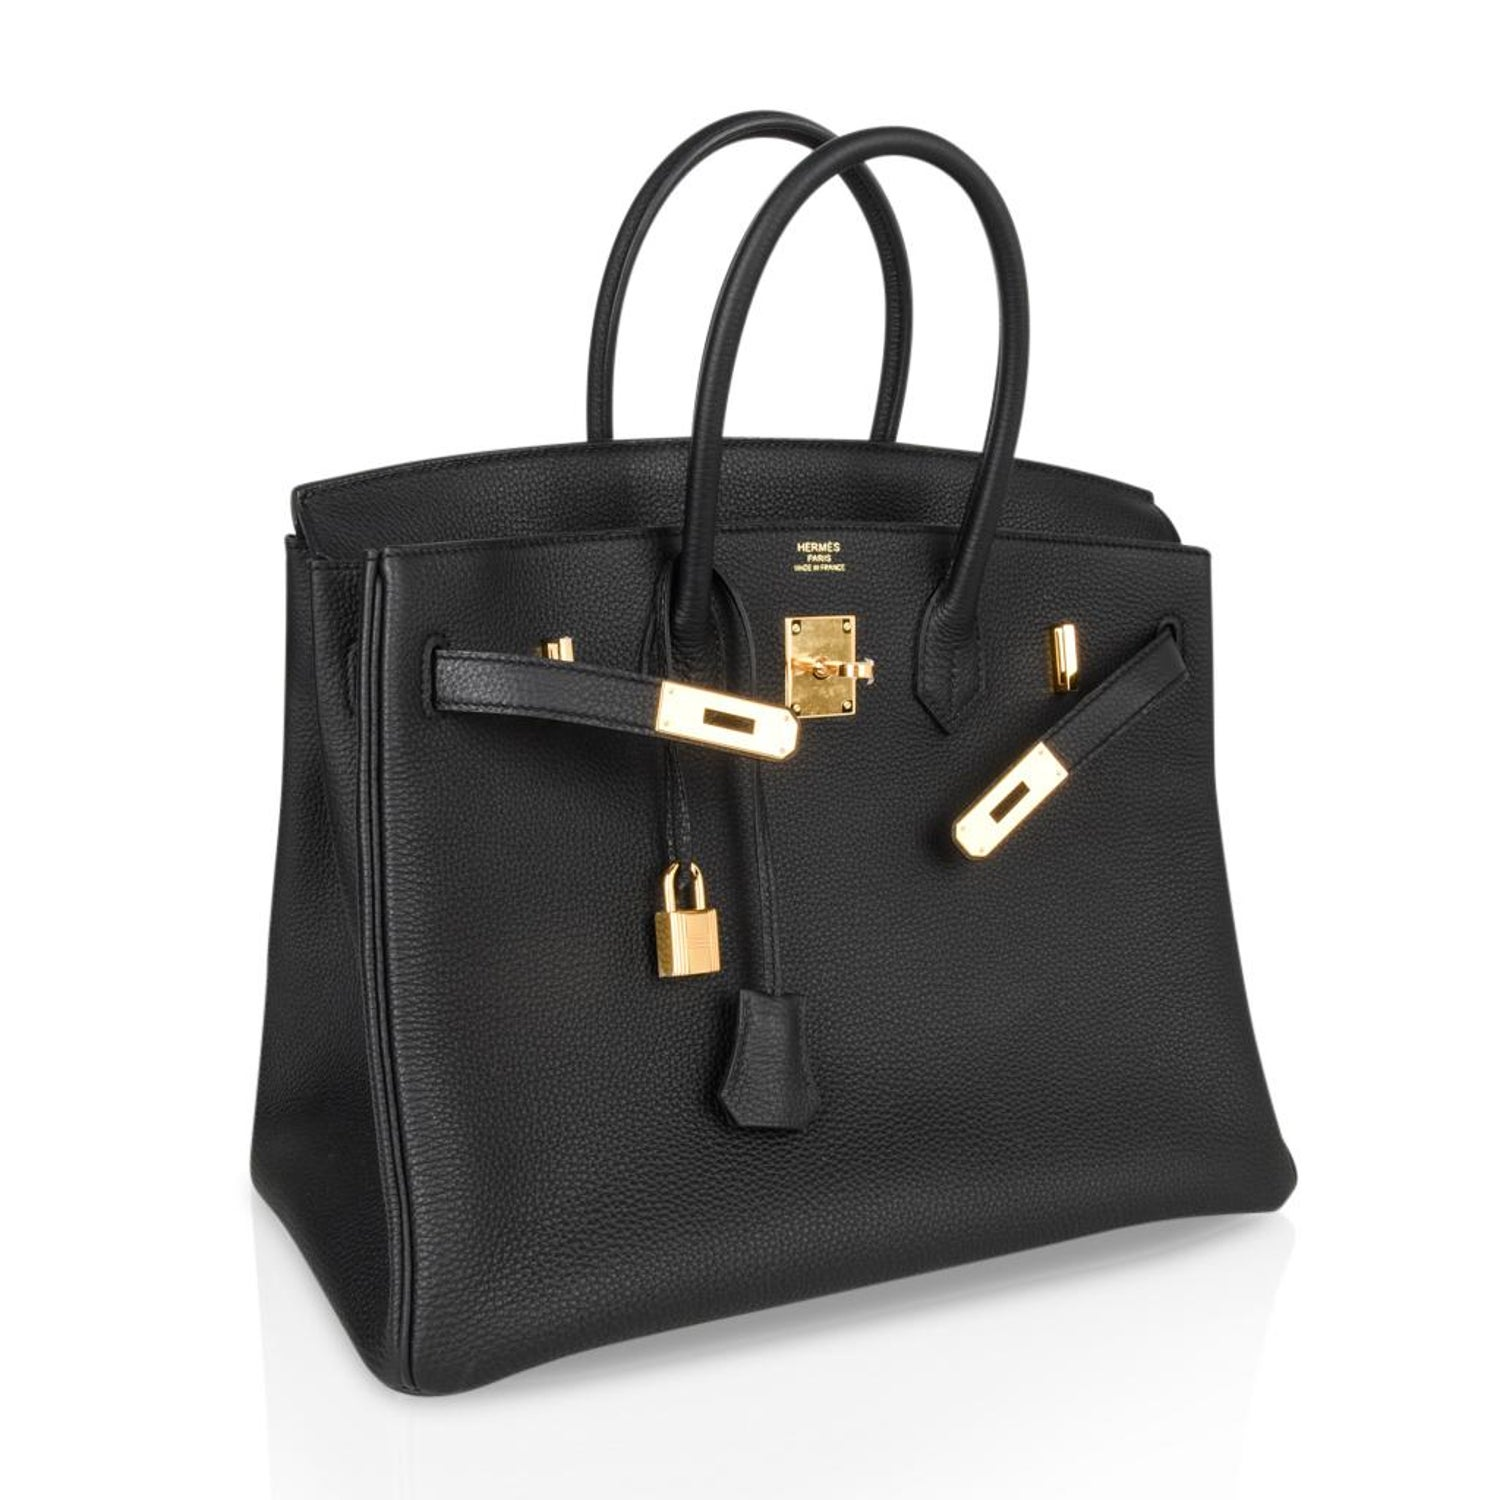 3befcd5deb2 Hermes Birkin 35 Bag Black Togo Gold Hardware Ultimate Classic For Sale at  1stdibs